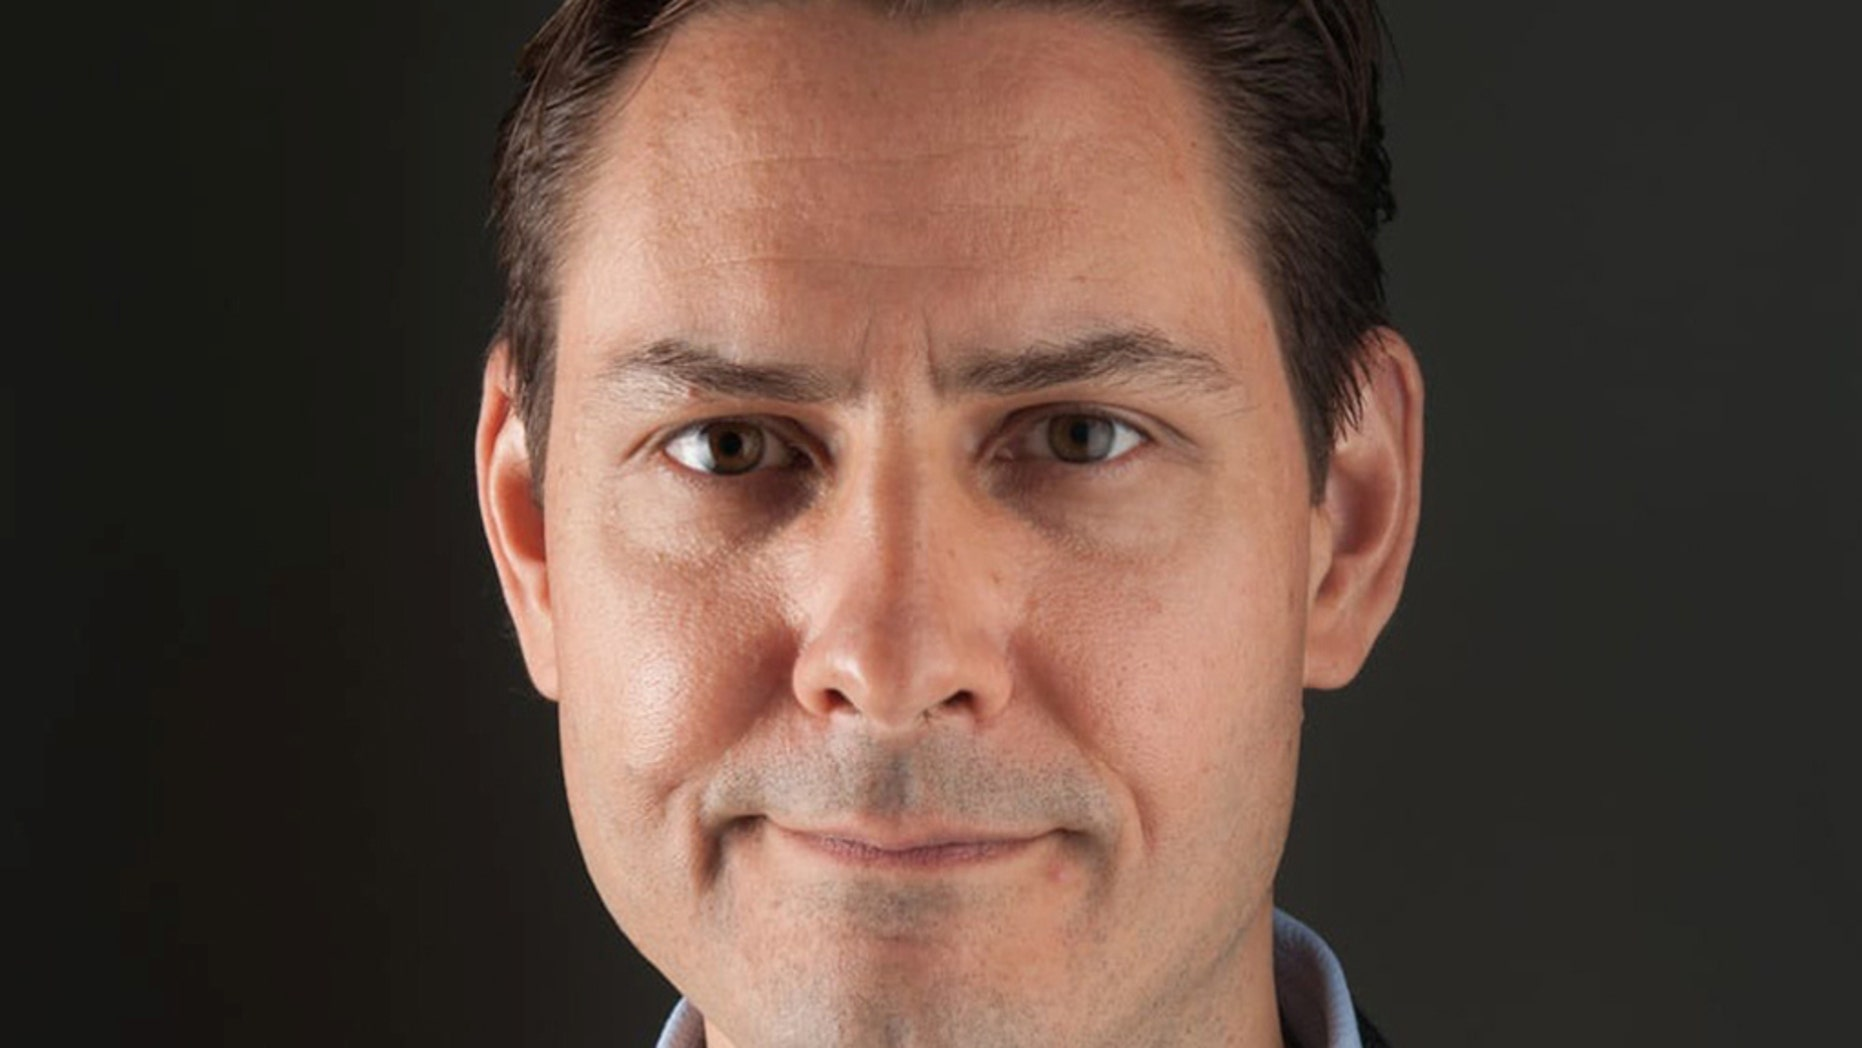 Michael Kovrig, an employee with the International Crisis Group and former Canadian diplomat, reportedly has been arrested in China.